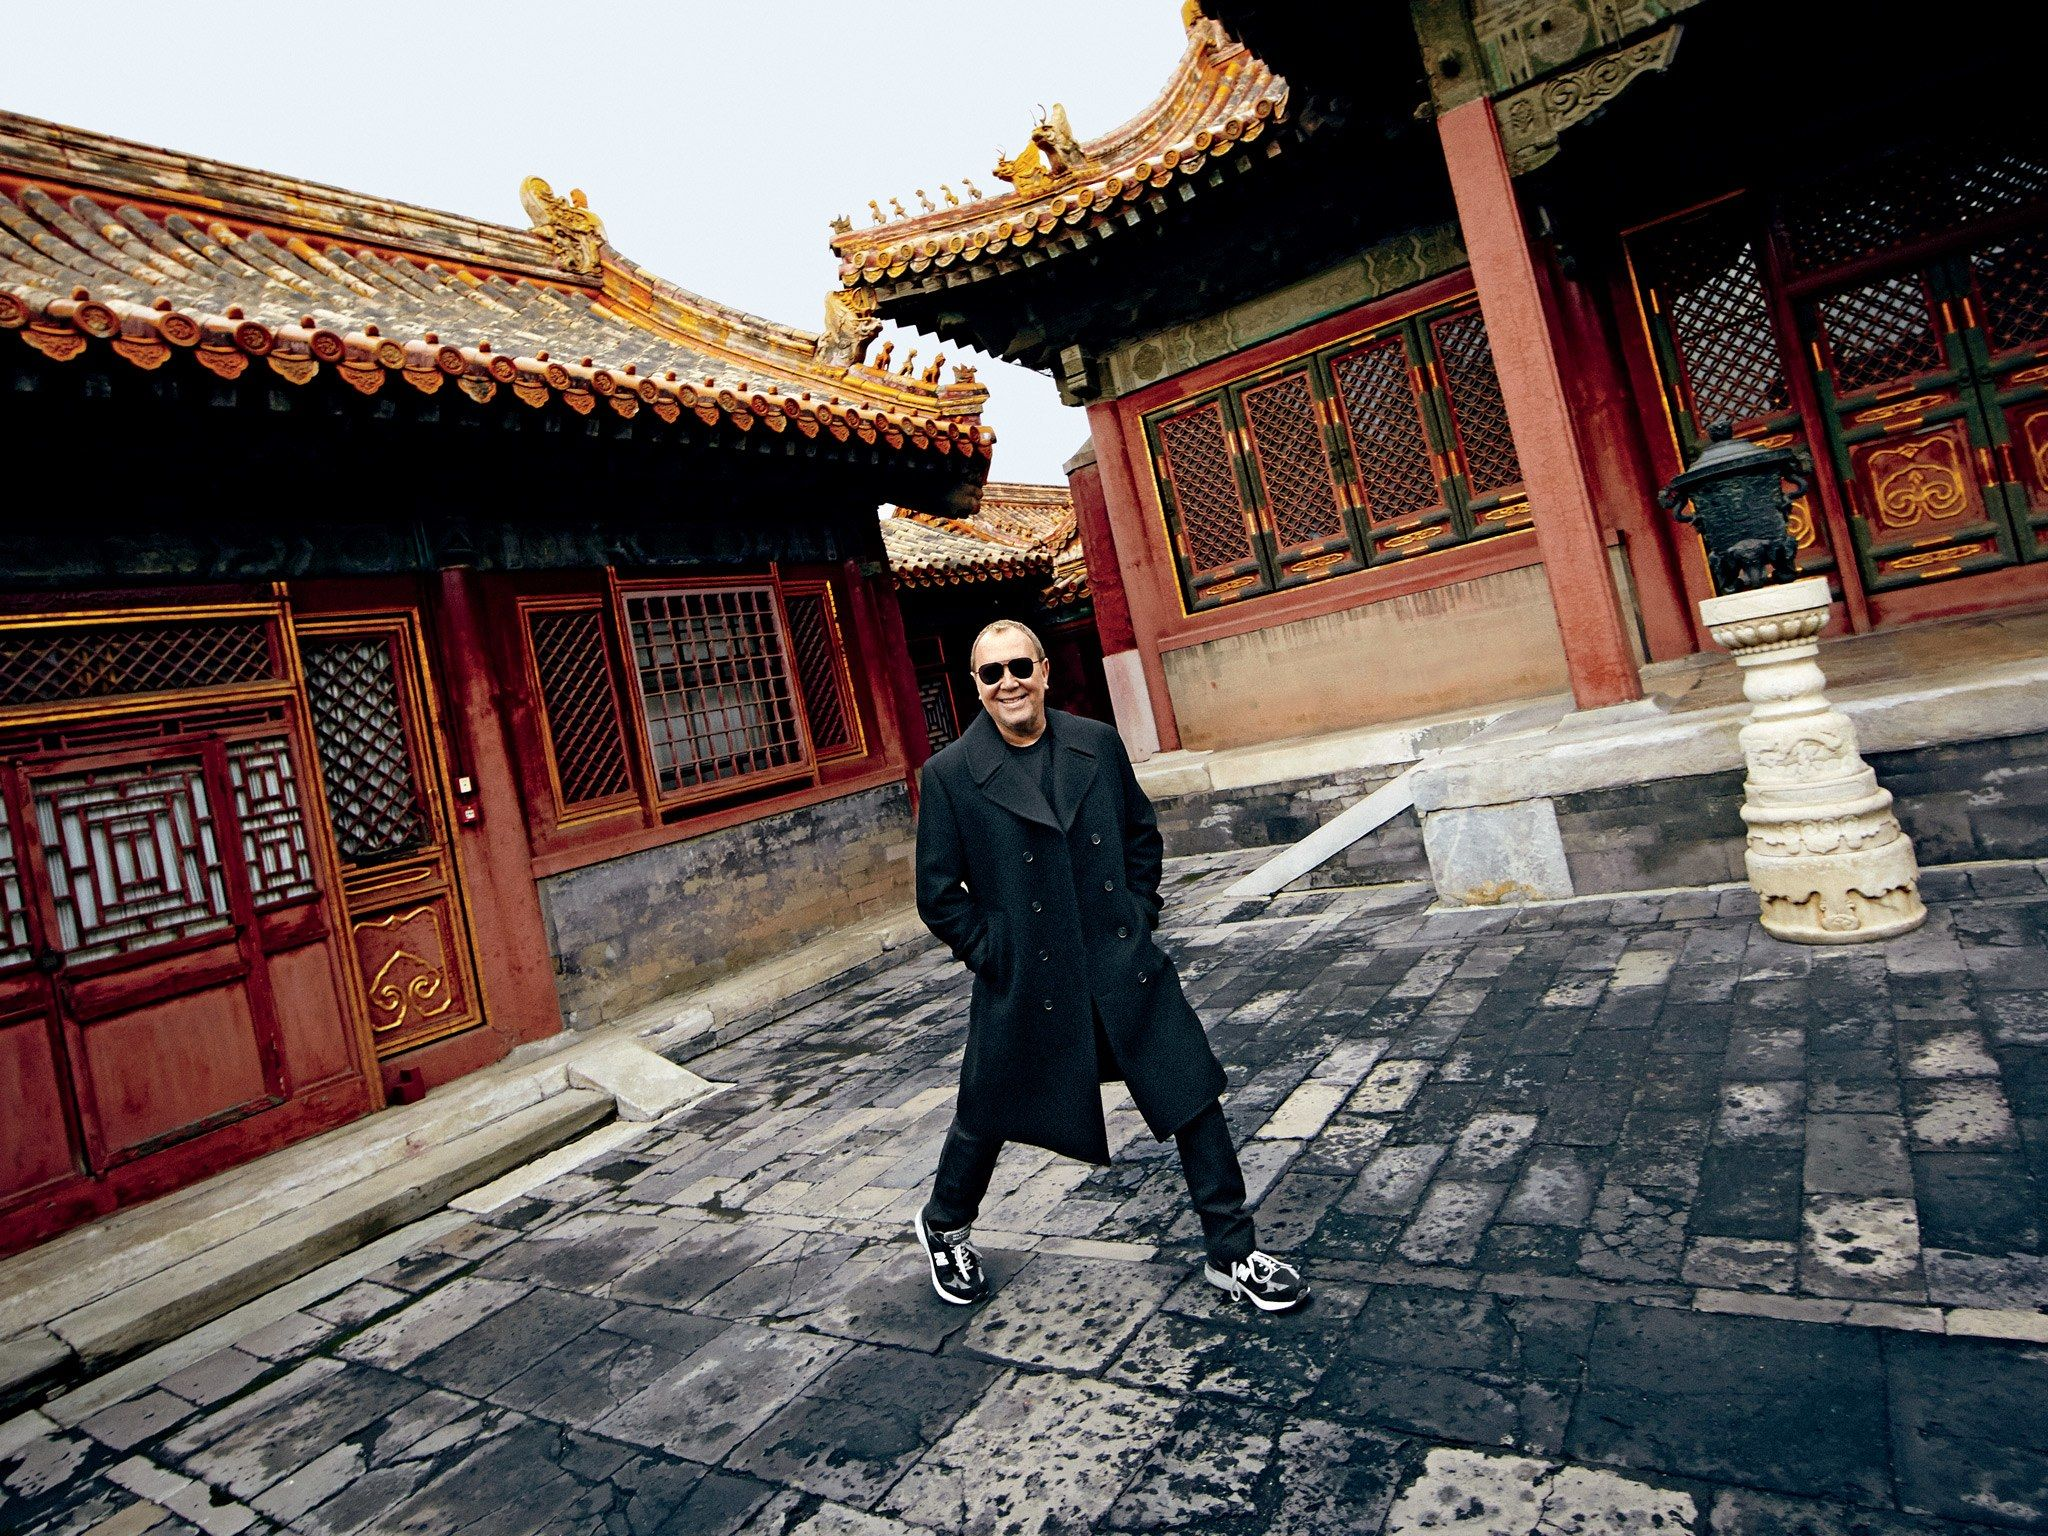 Designer Michael Kors knew that if he really wanted to experience Beijing in two days, he'd have to leave the legwork to the pros.